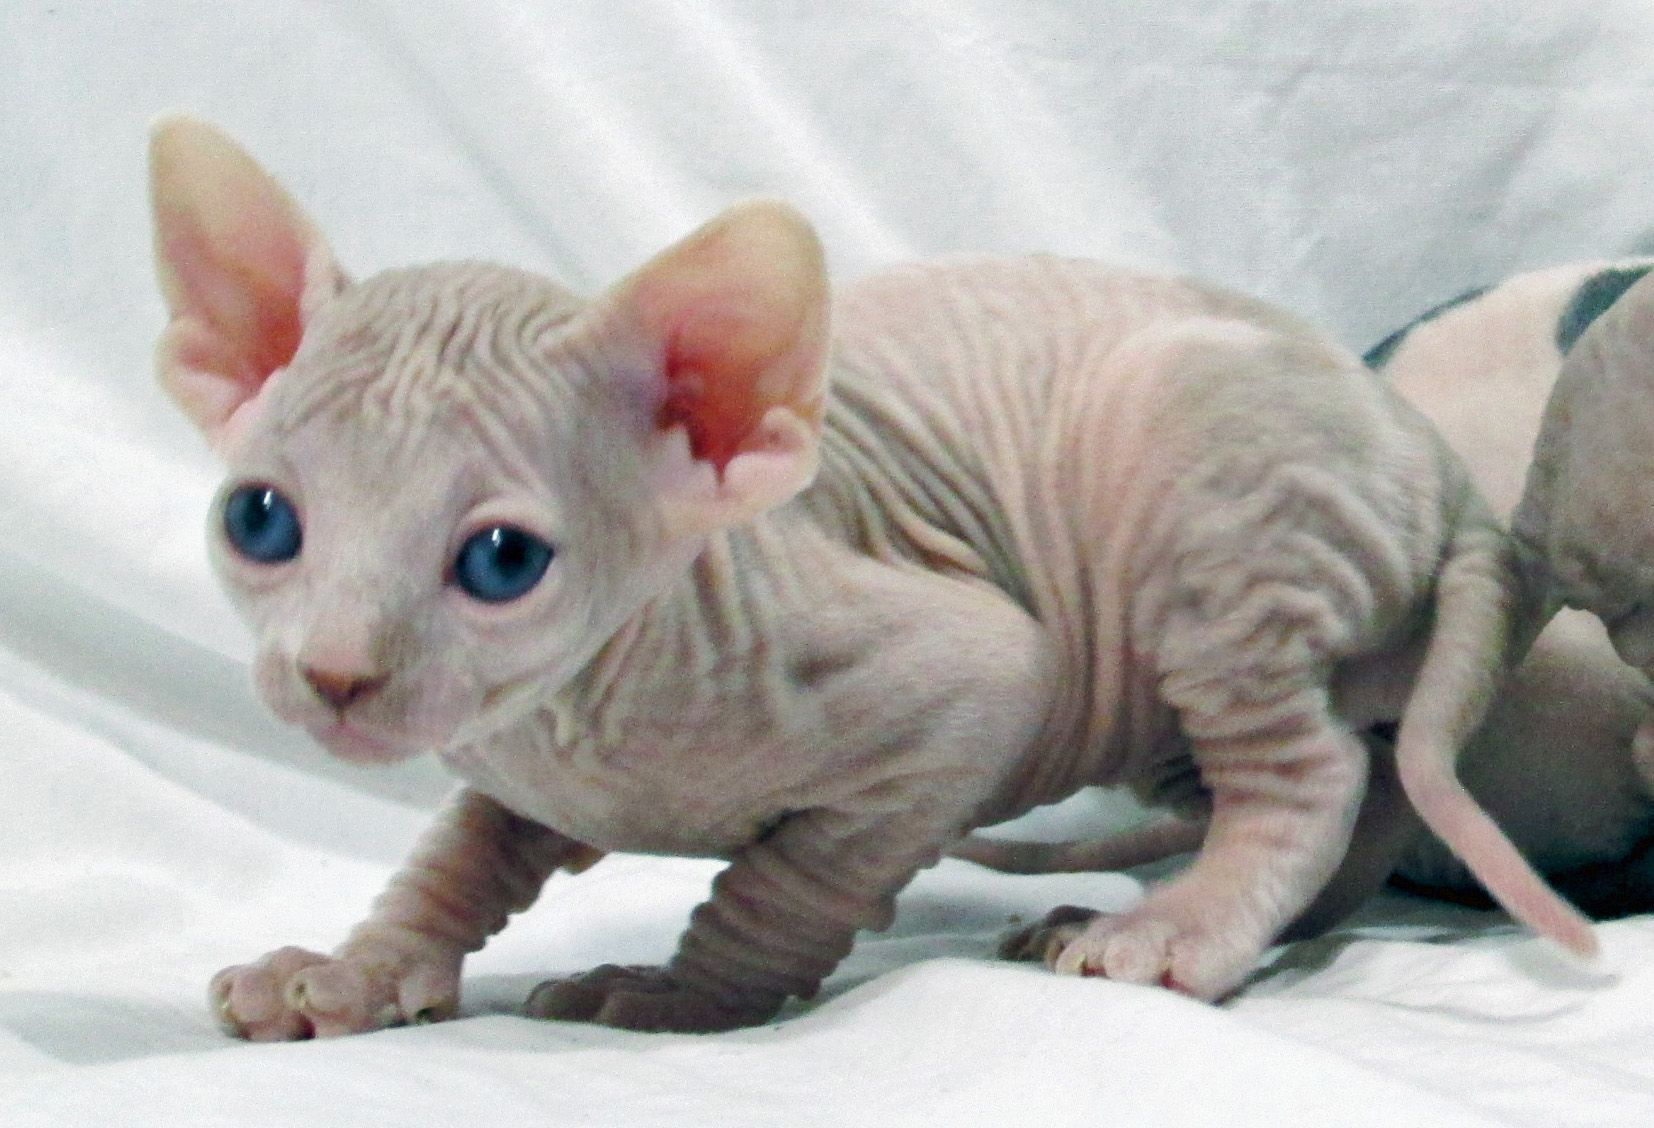 Sphynx kittens for sale | Sphynx cats | Sphynx kittens for